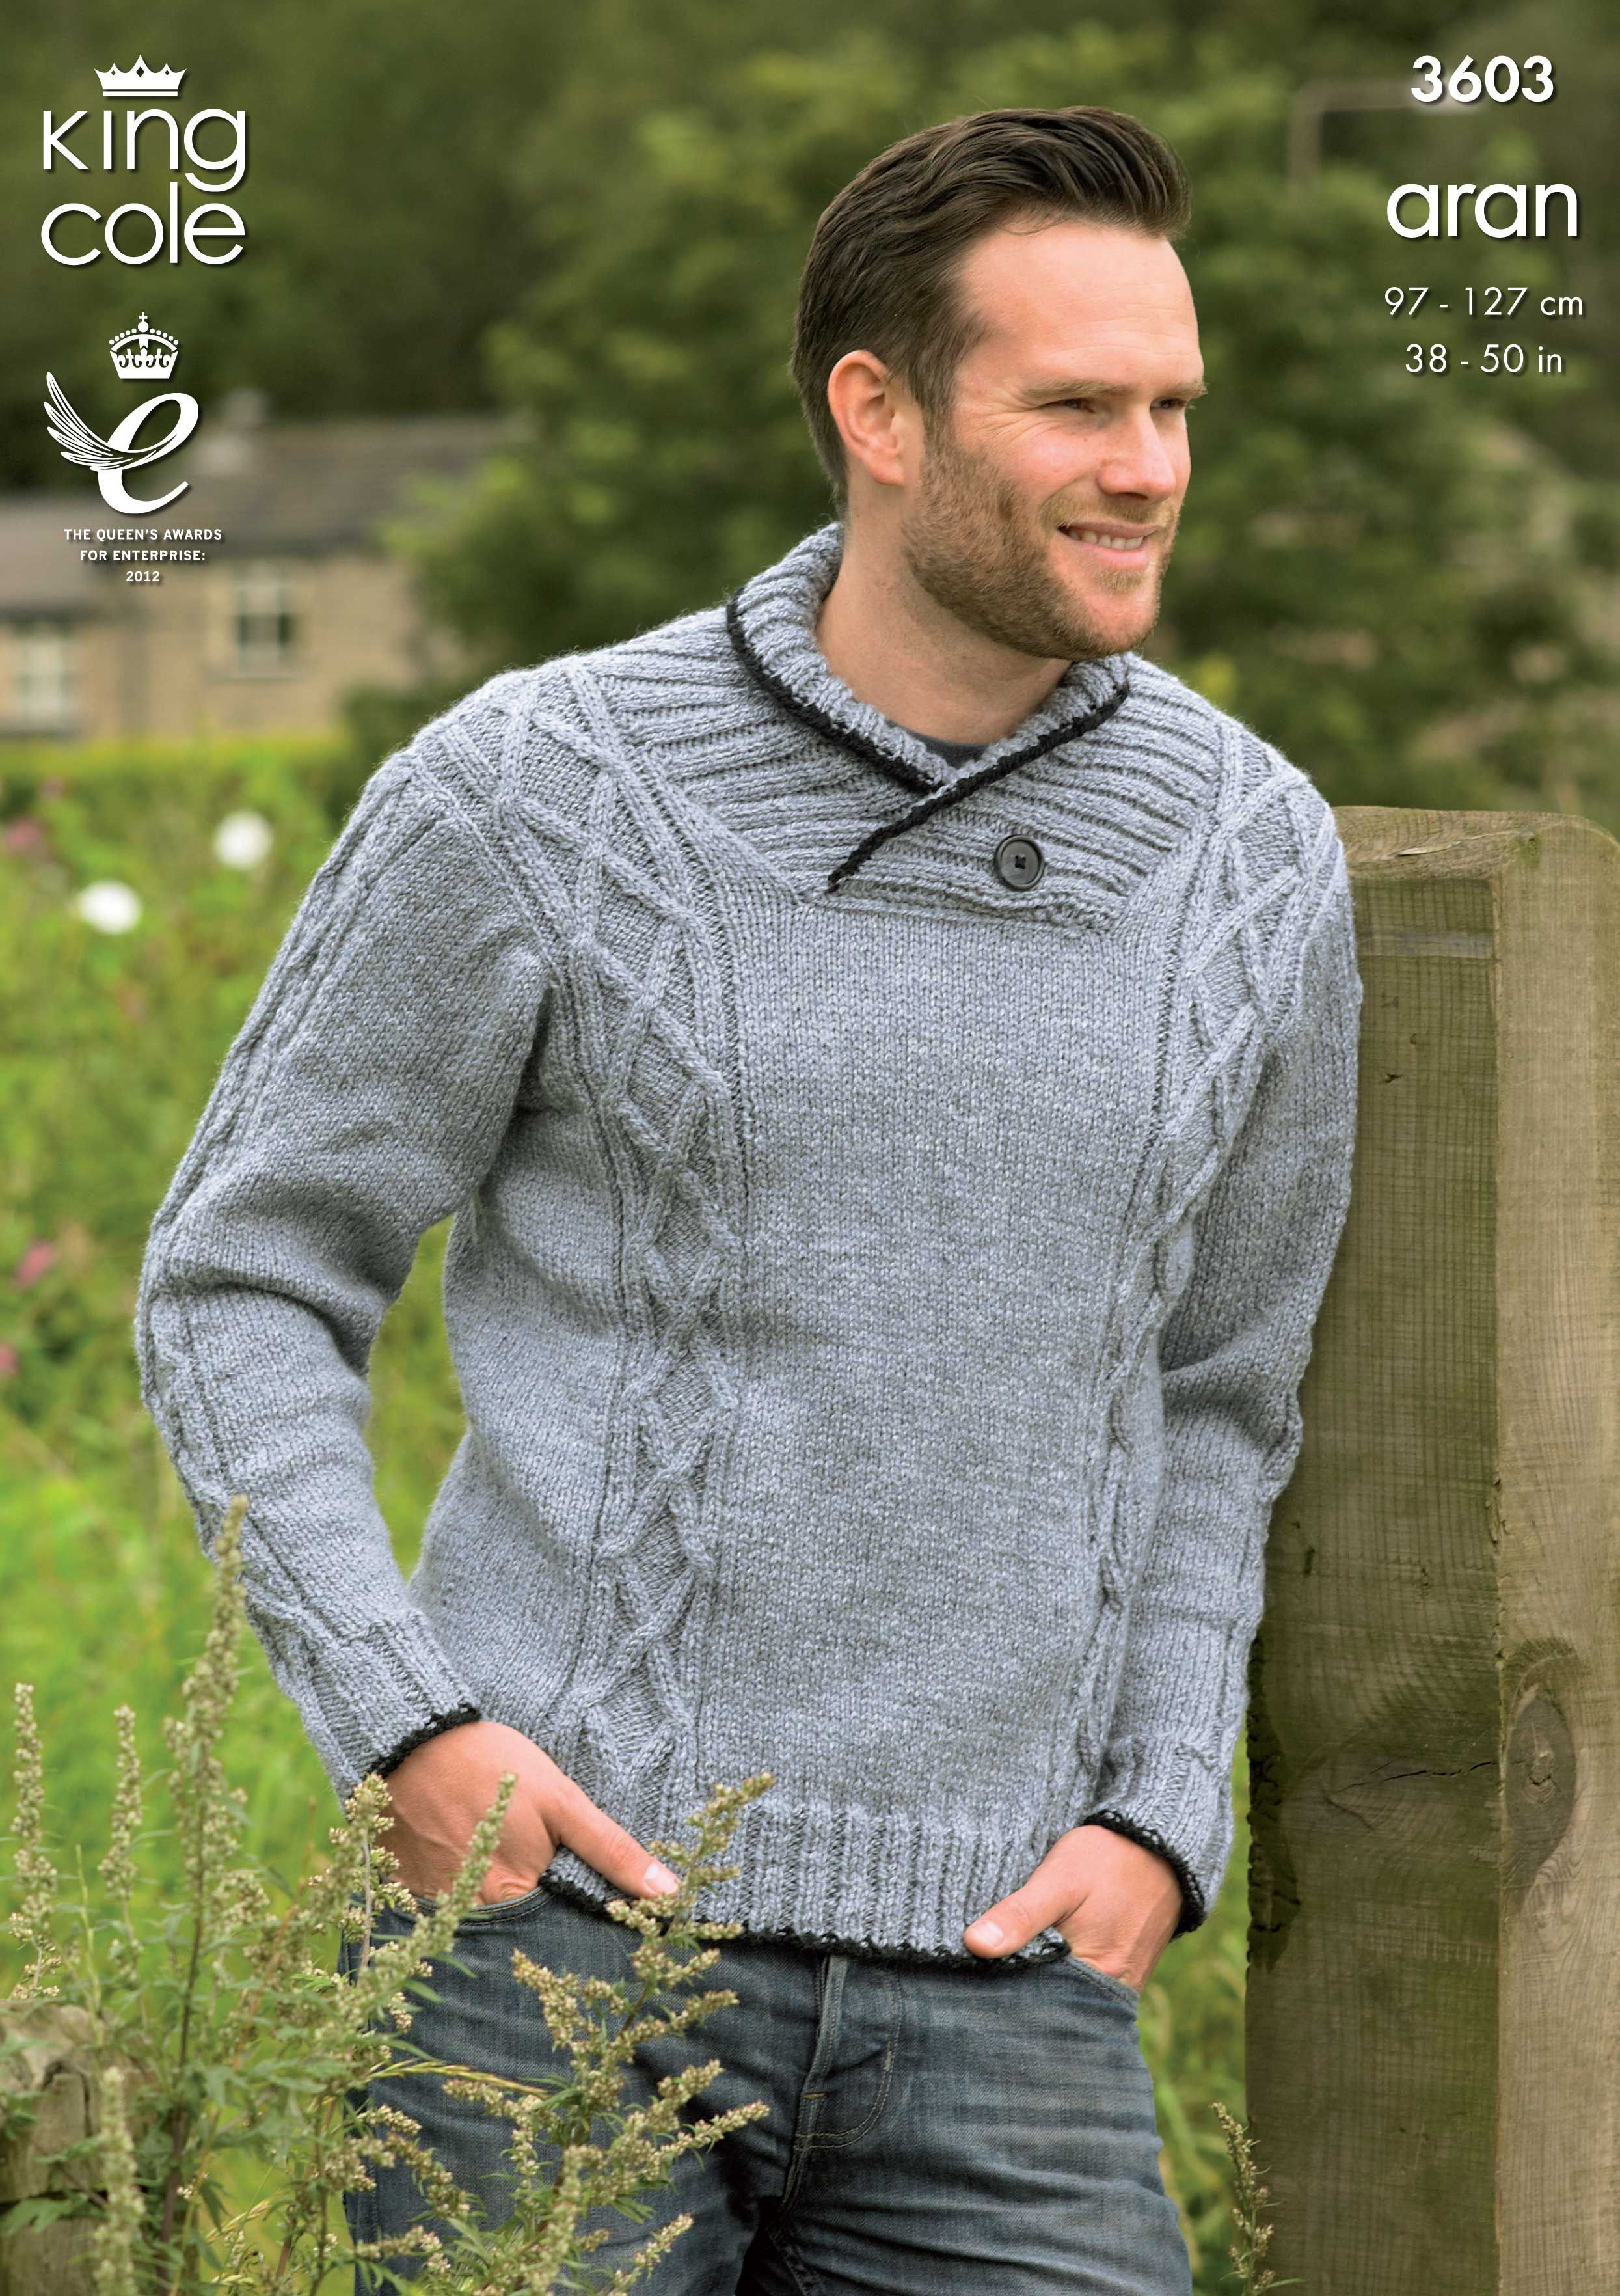 Sweater and Gilet Knitted in Big Value Aran - King Cole   PULLOVERES ...